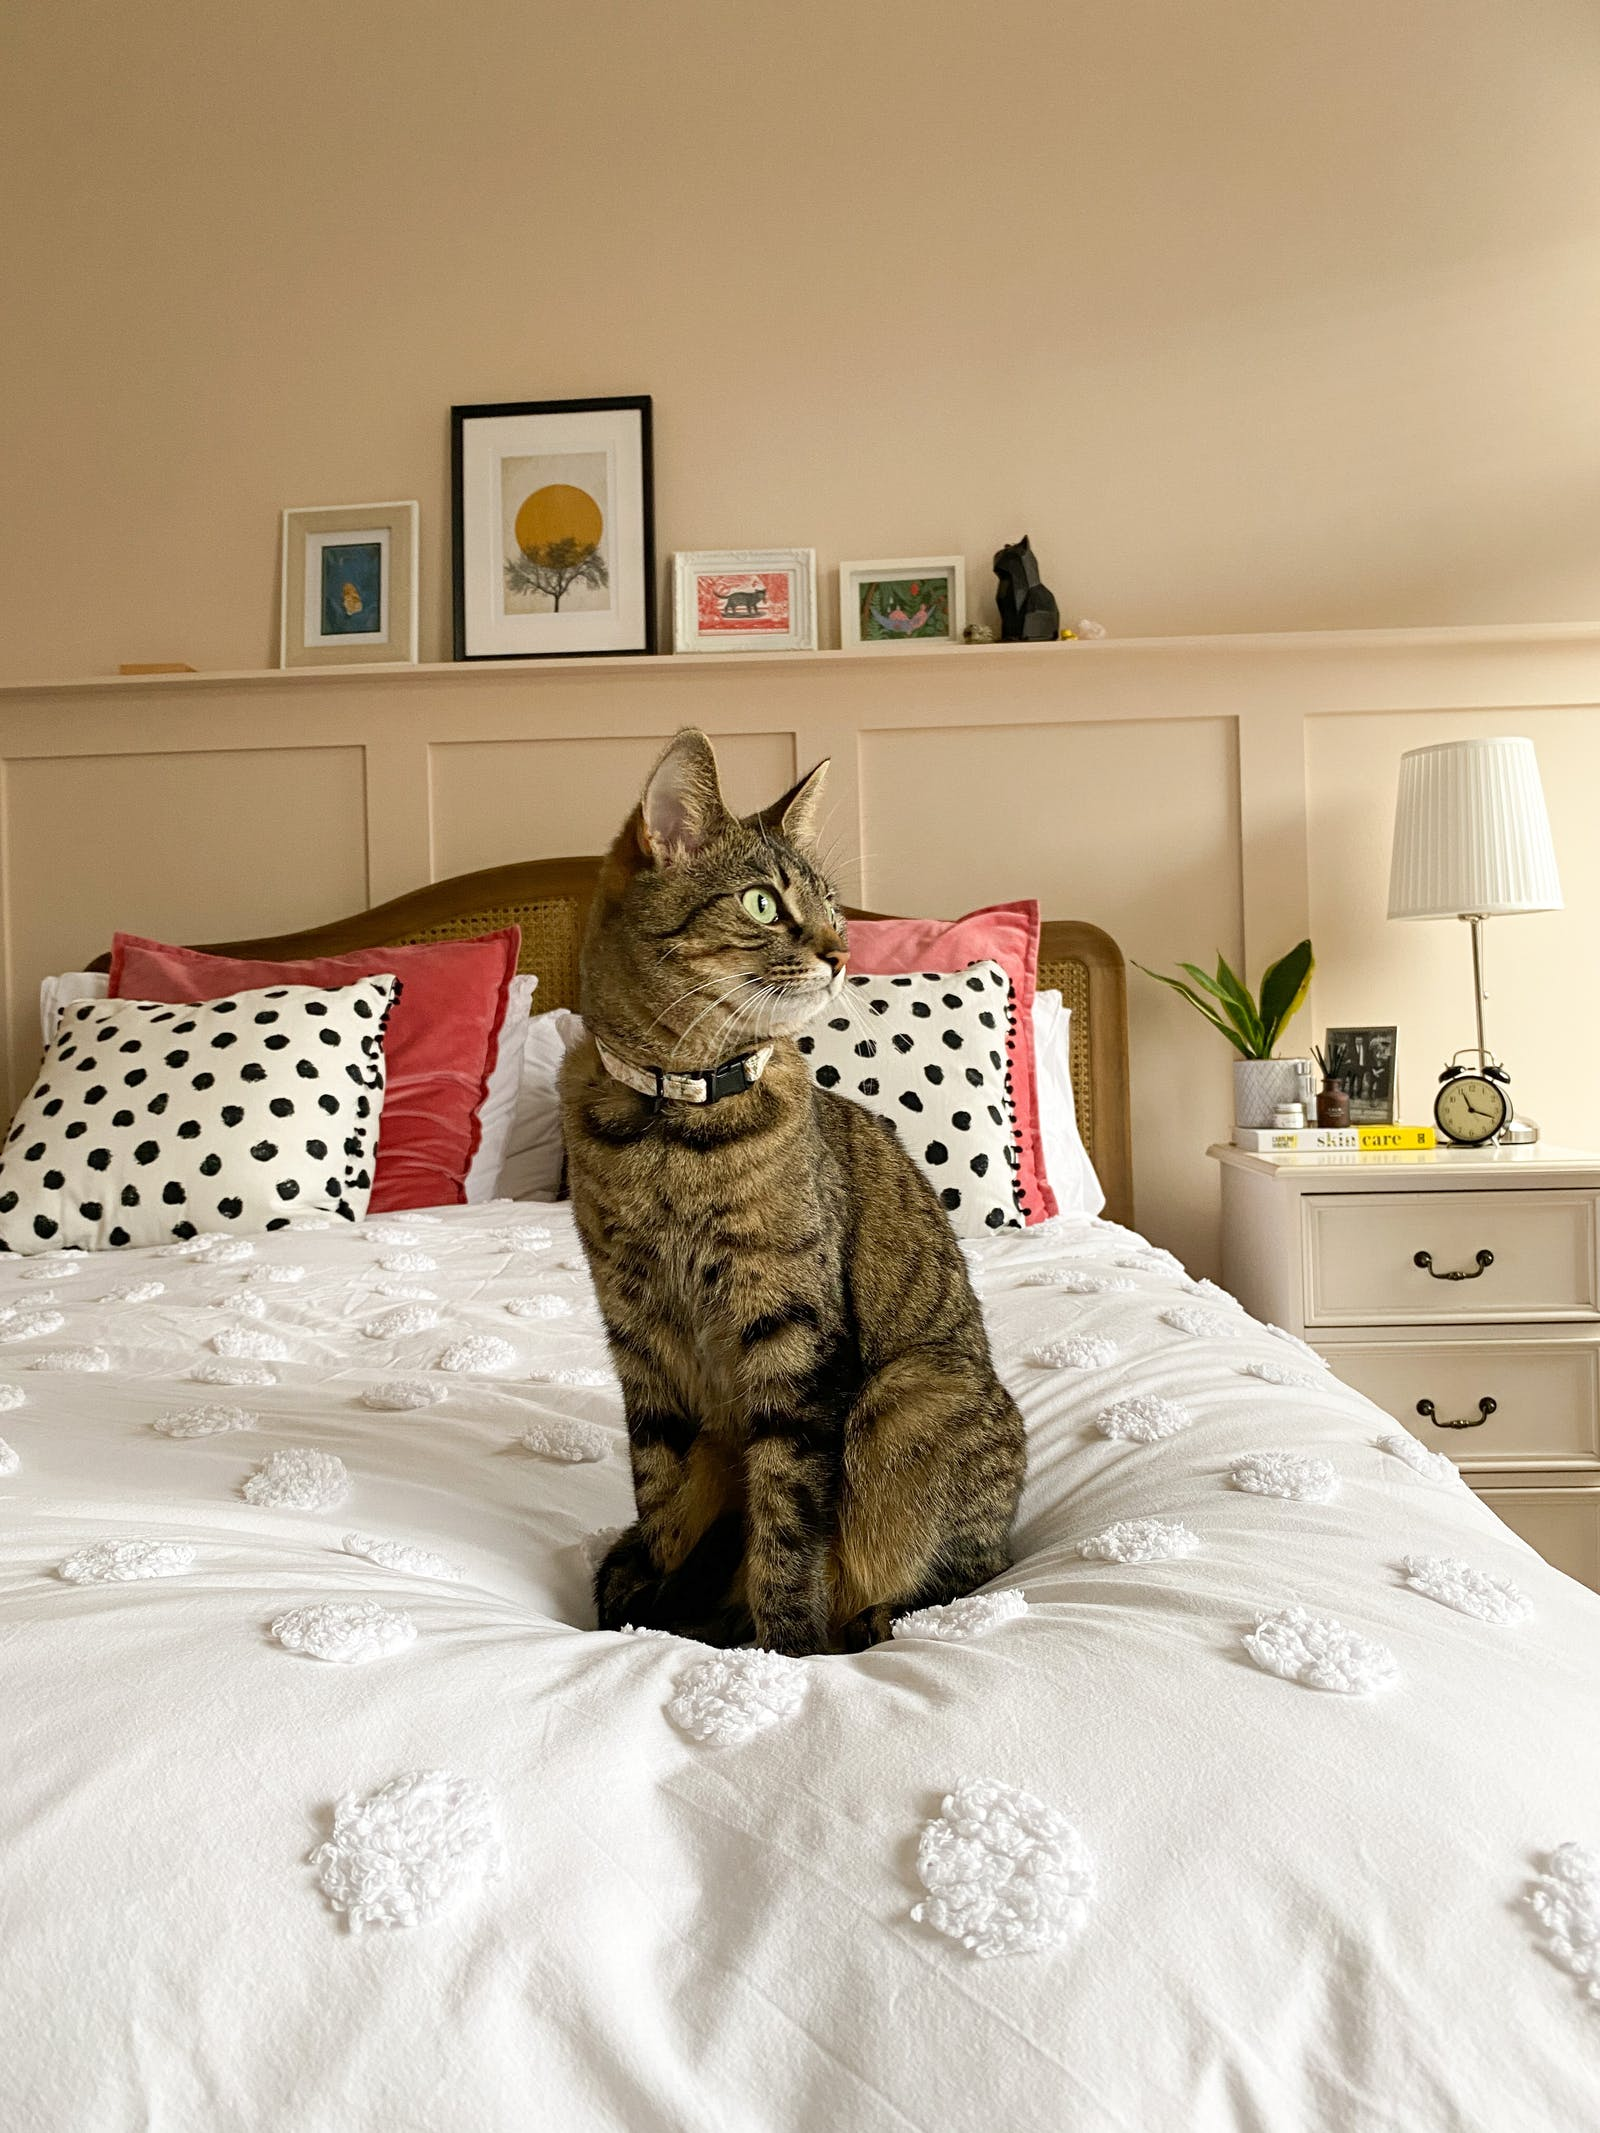 Cat sitting on bed, in bedroom painted in Link Pink 02